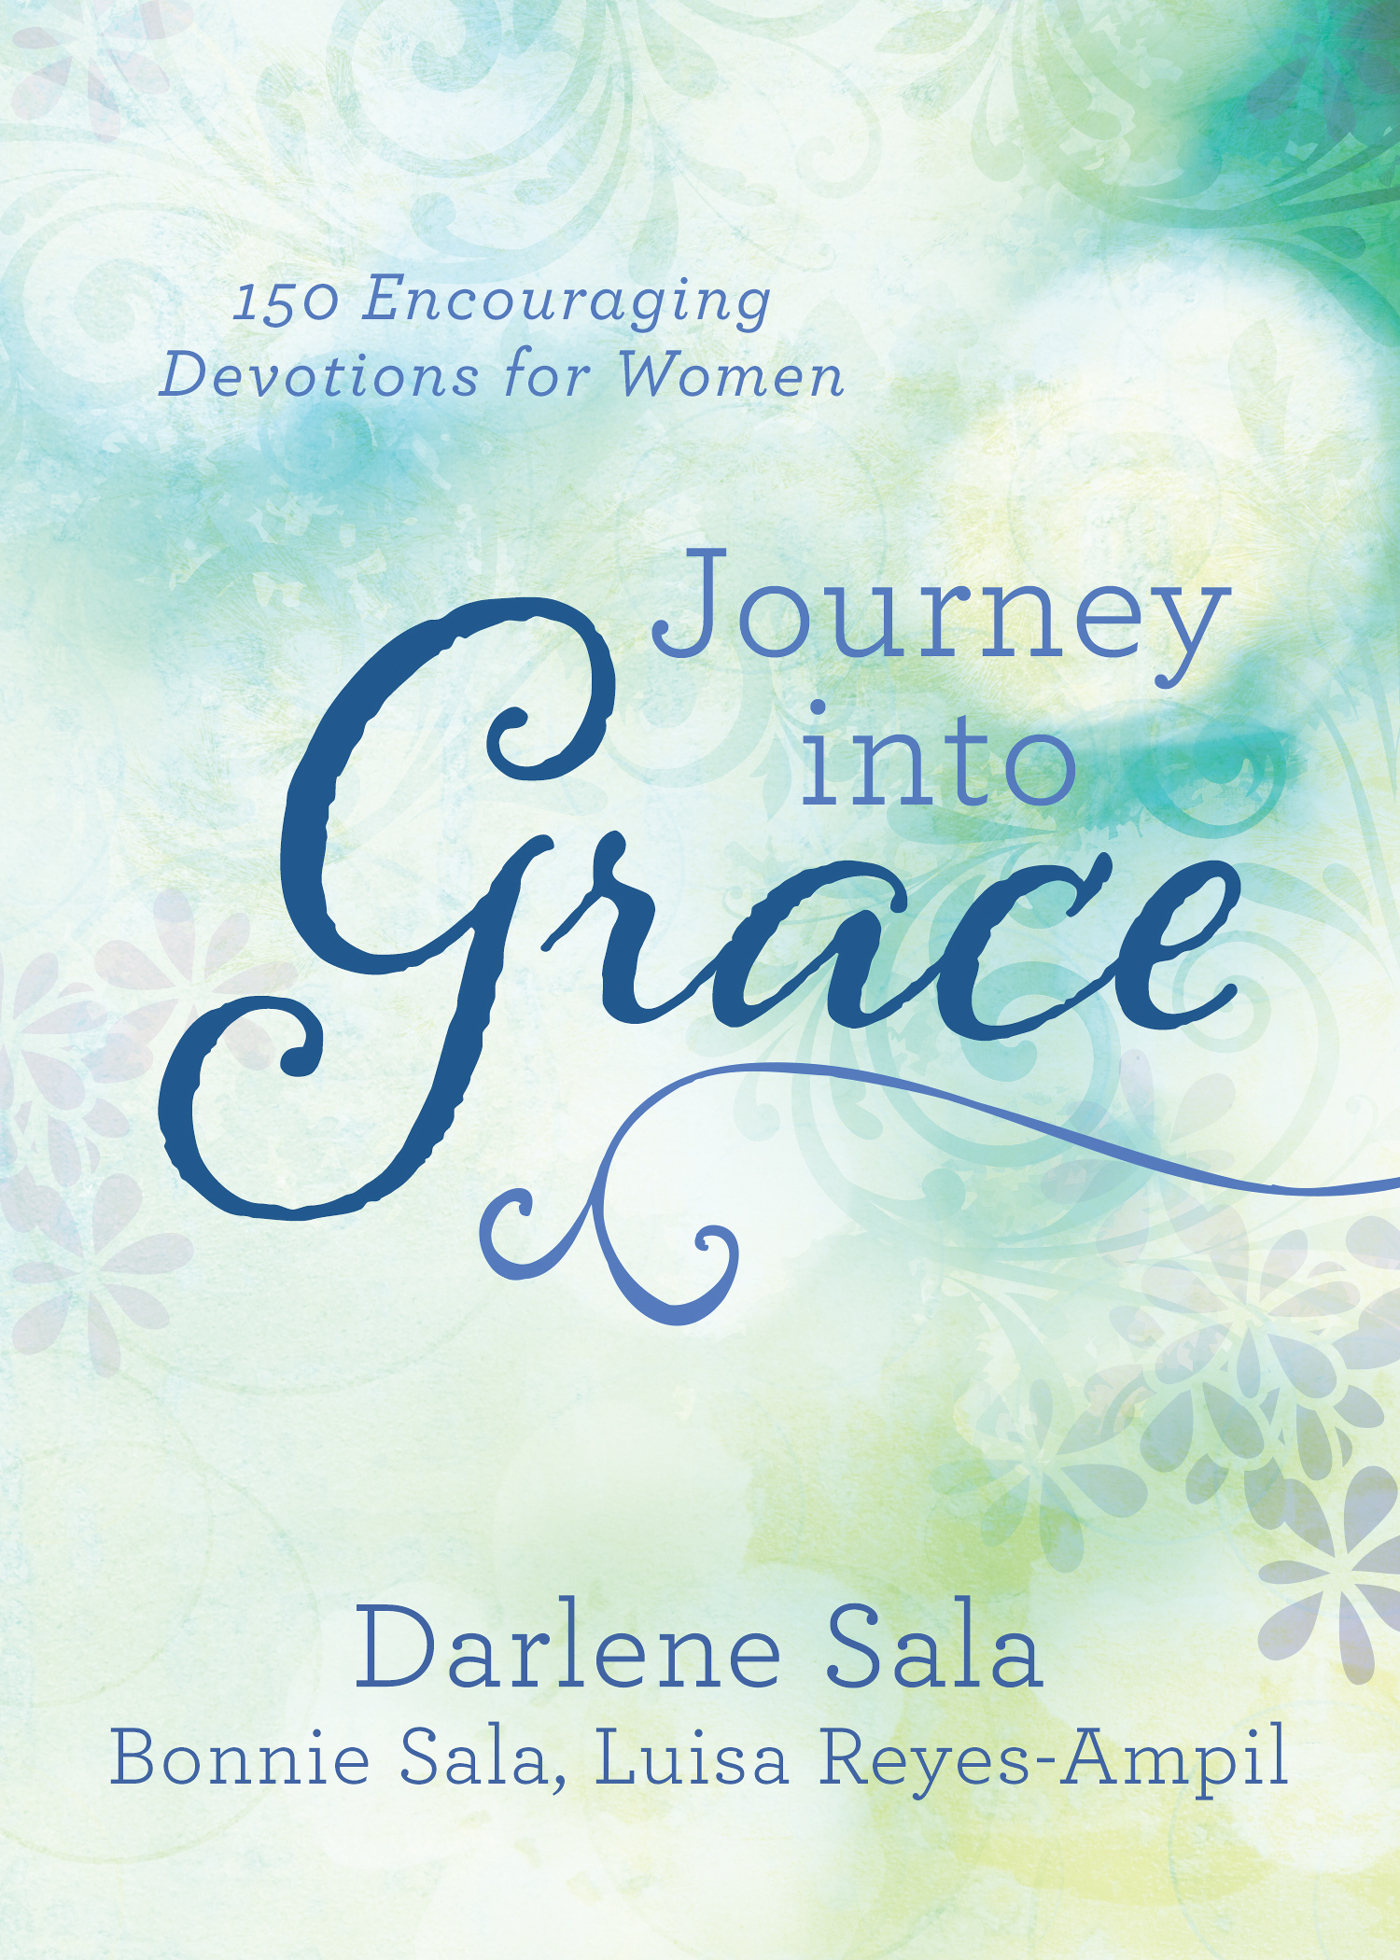 Journey into Grace 150 Encouraging Devotions for Women